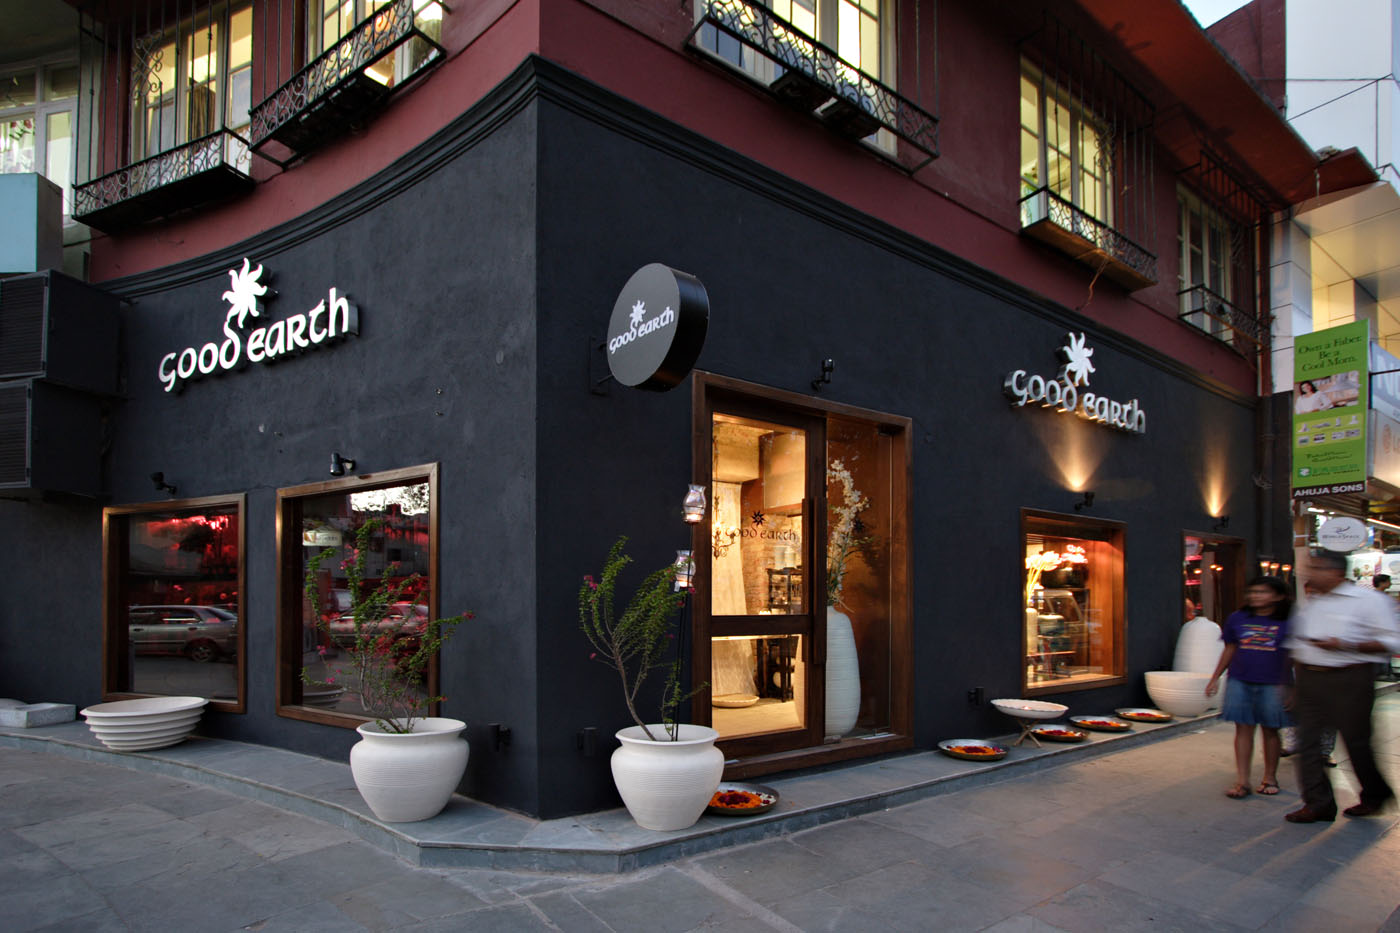 New Delhi This 2500 Sq Ft Retail Outlet For The Lifestyle Brand Good Earth Showcases The Brand S Home Decor Lifestyle Accessory Ranges